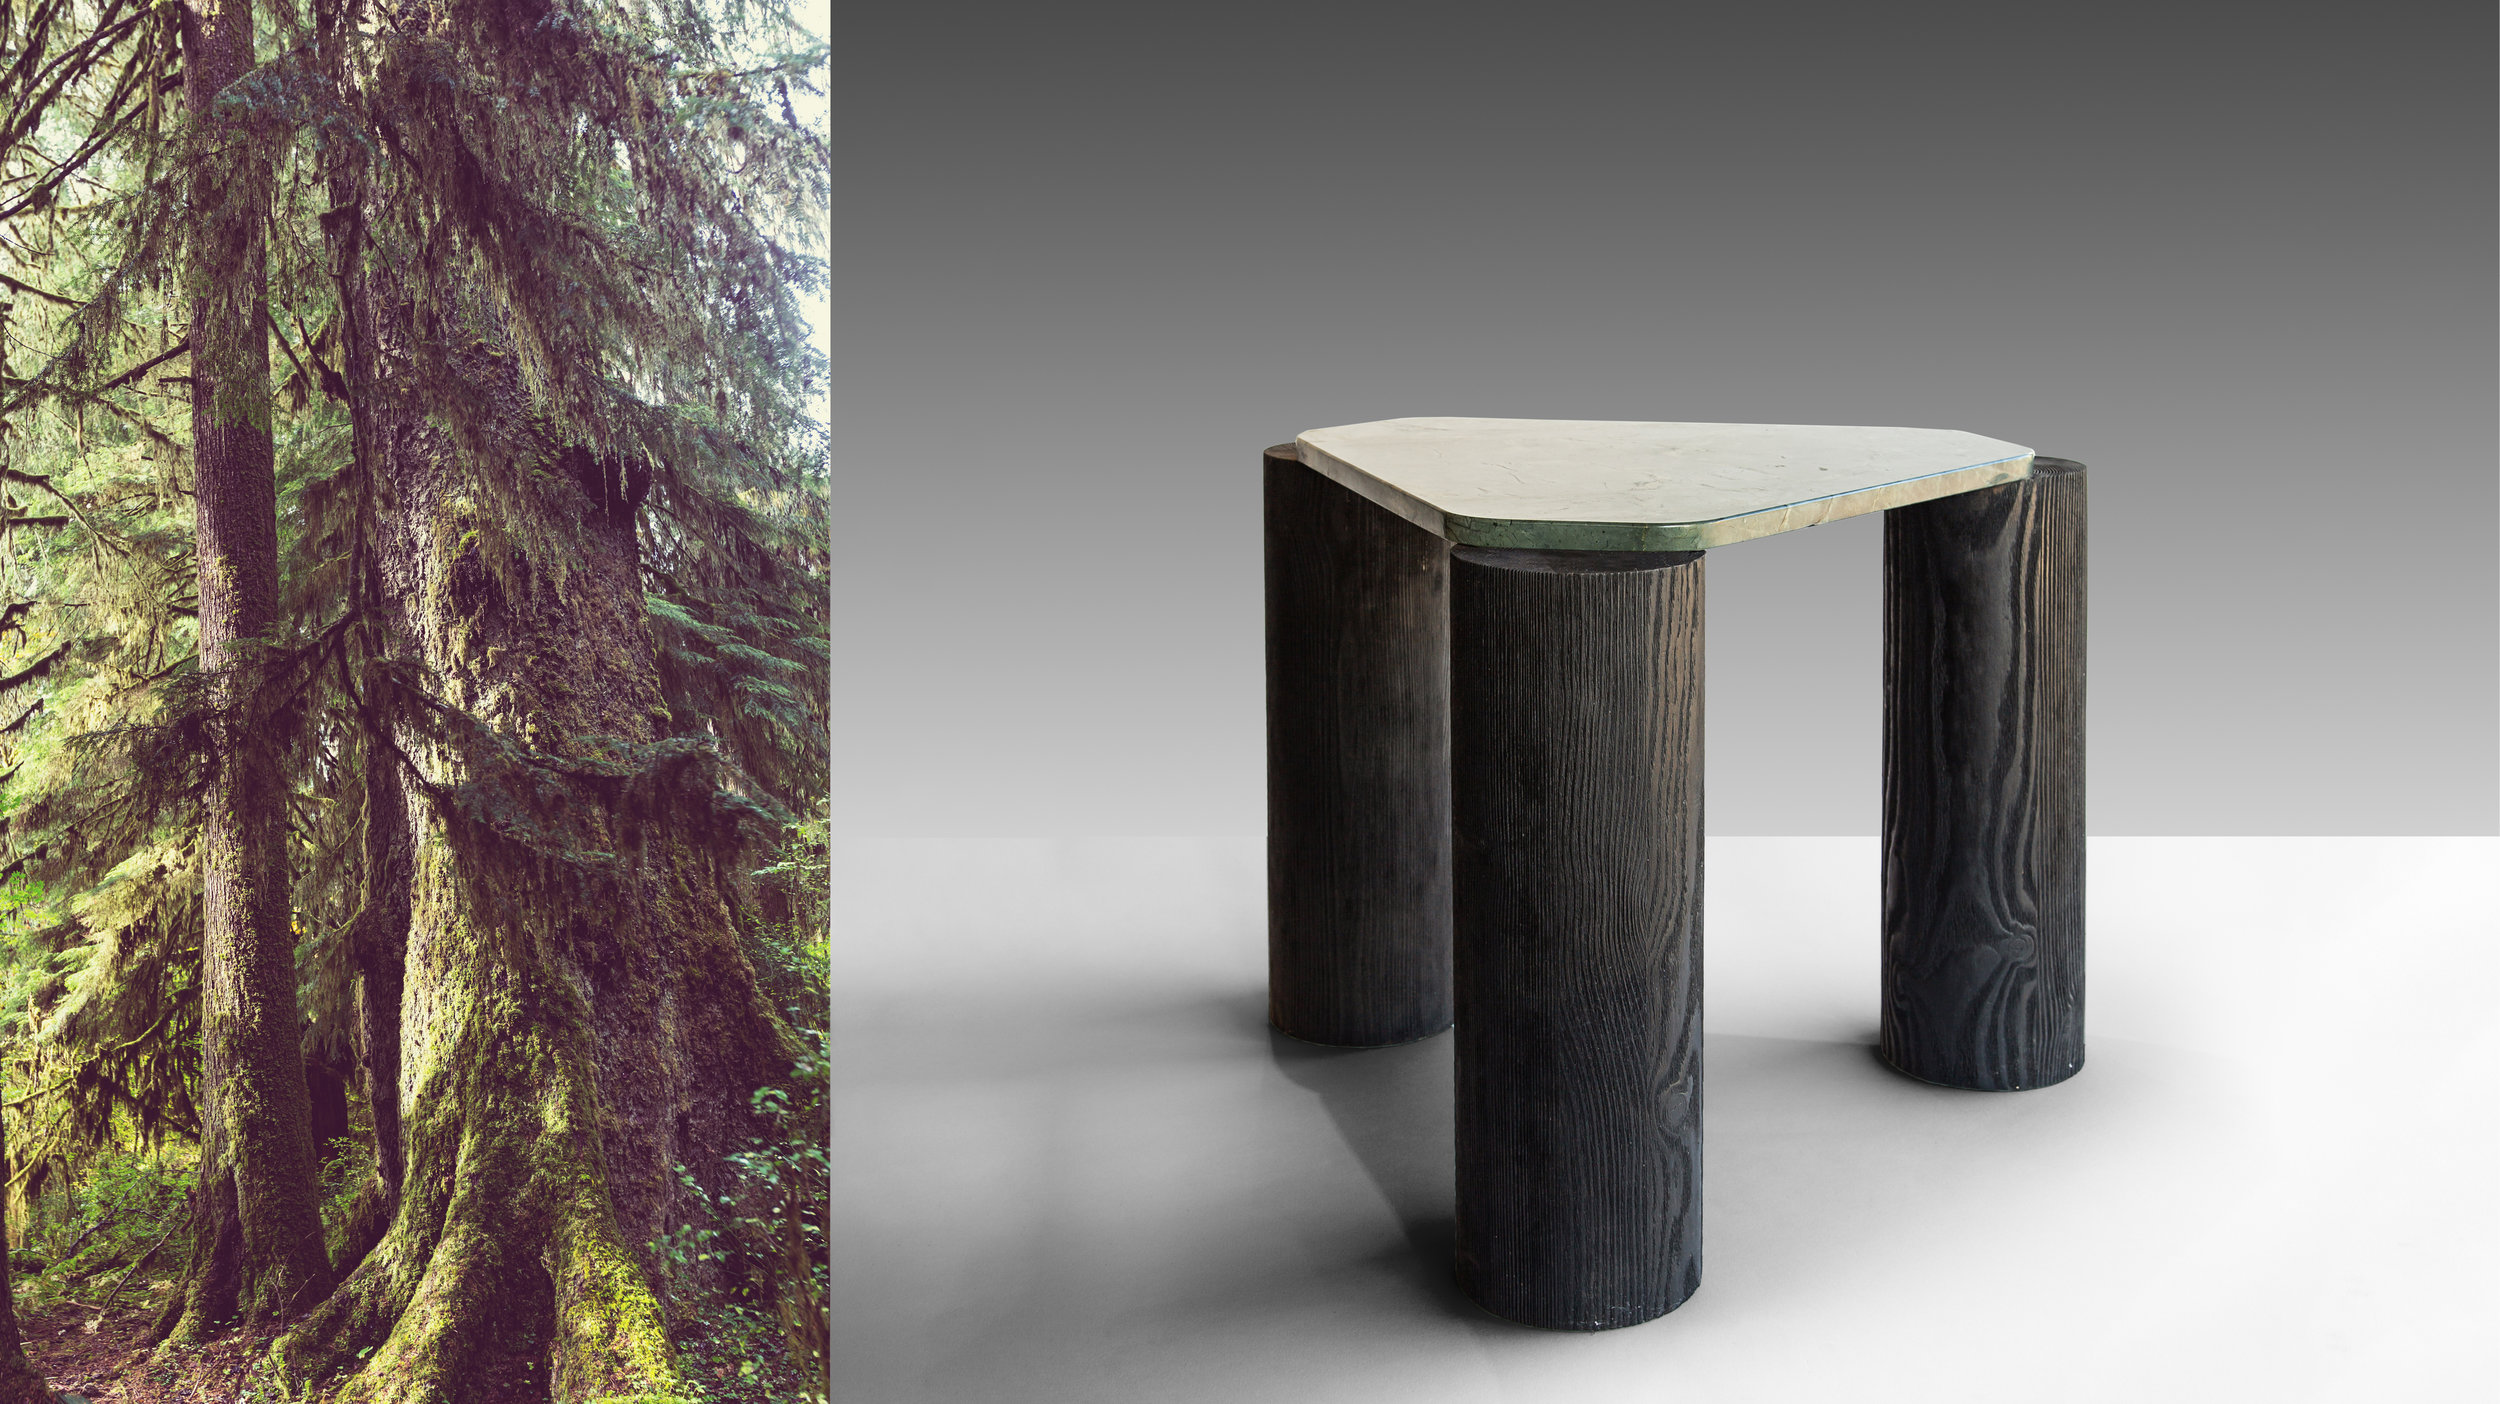 Made of Larch tree, a conifer growing mainly in Siberia and Canada's boreal forests, the table legs are over-scaled and wire-brushed to emphasise their graphic carbon stained detail. ©  Niel Vosloo